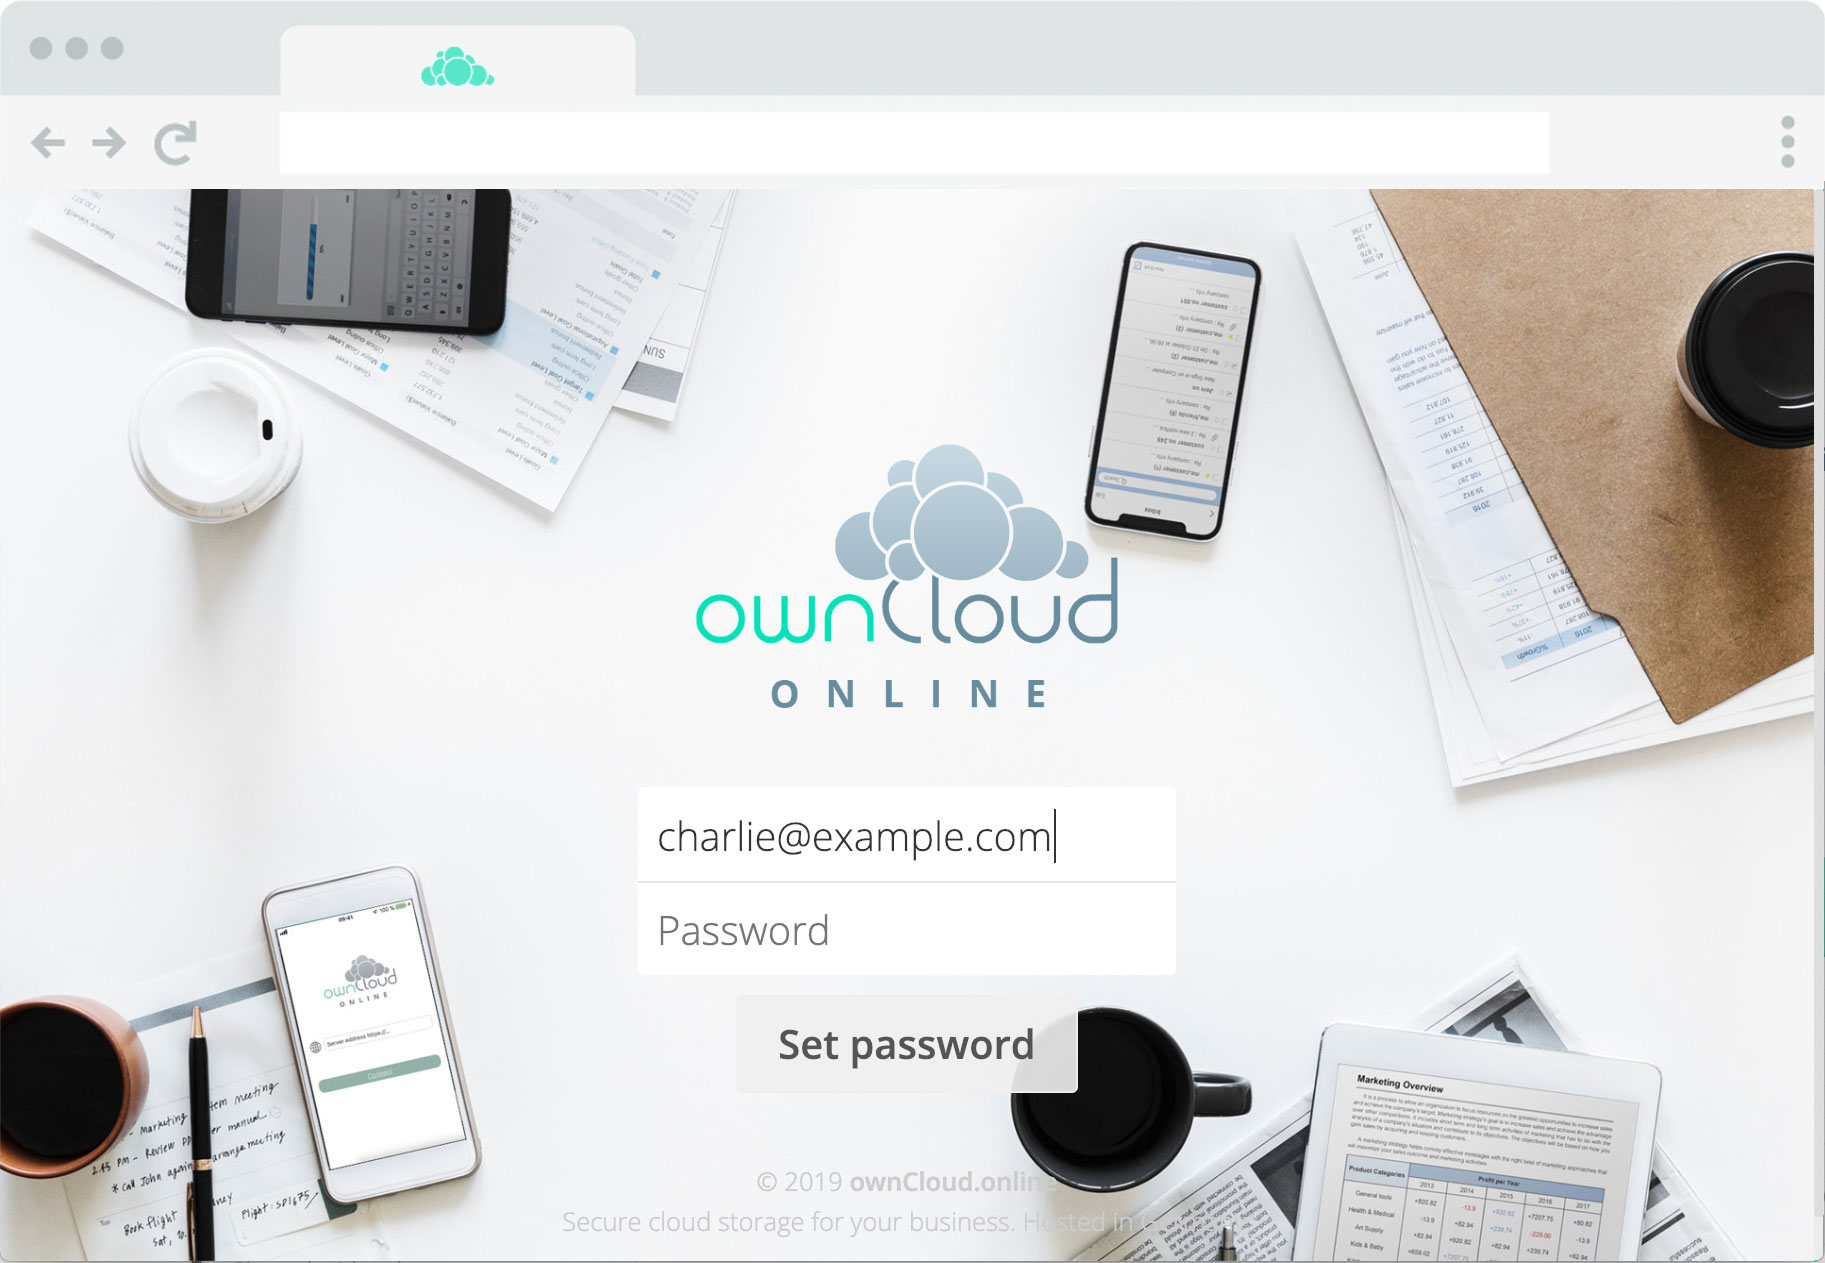 ownCloud.online - Guest accounts step 5